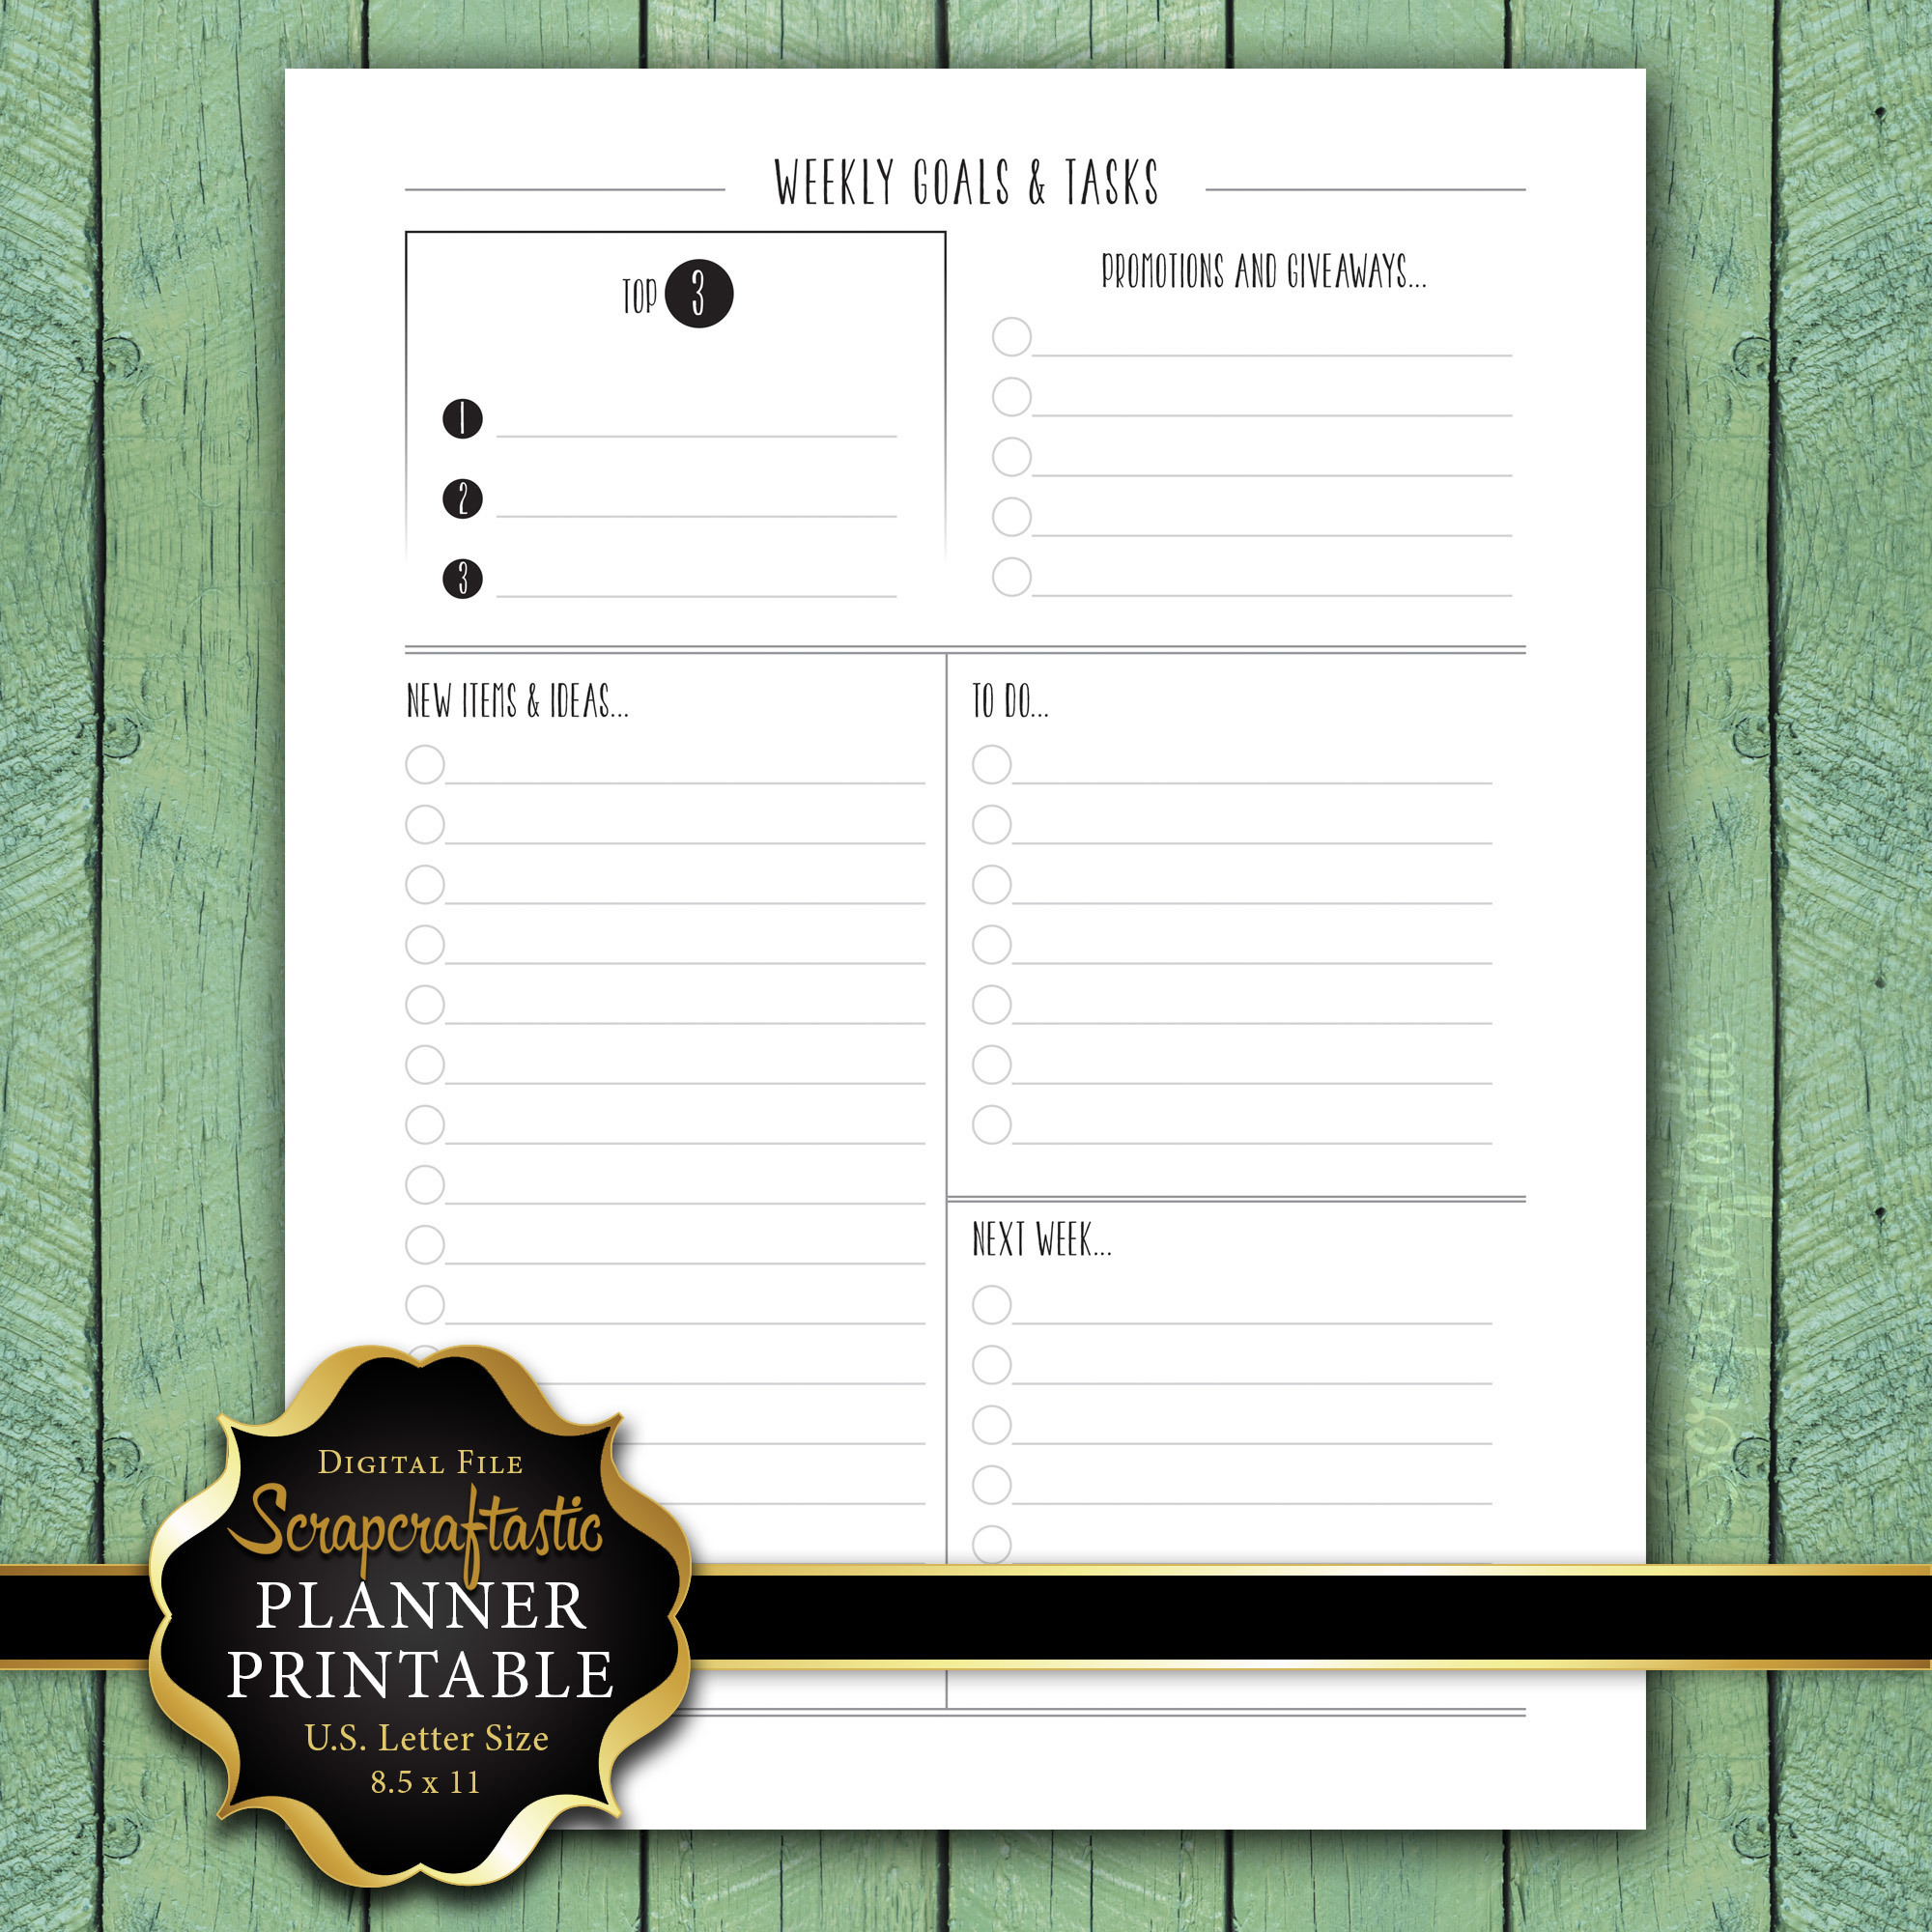 Weekly Goals, Tasks & To Do Letter Size Planner Printable dbr_ltr_weeklyshopgoals_todo